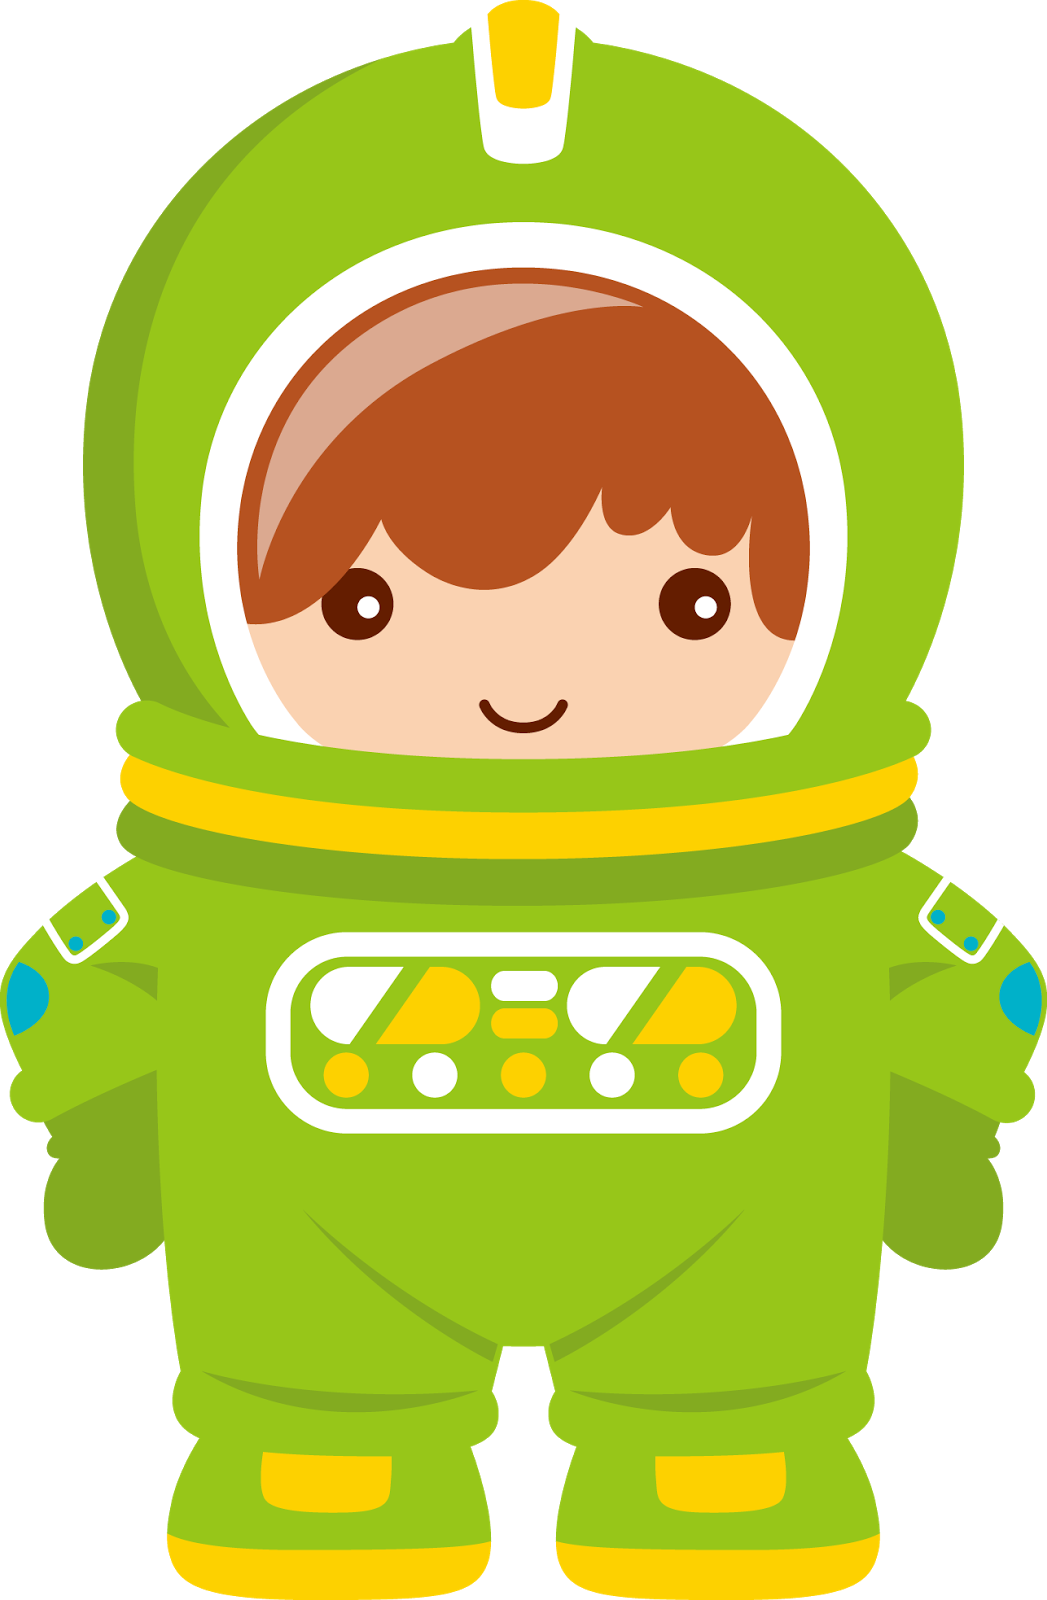 Aliens astronauts and spaceships. Spaceship clipart apollo spacecraft